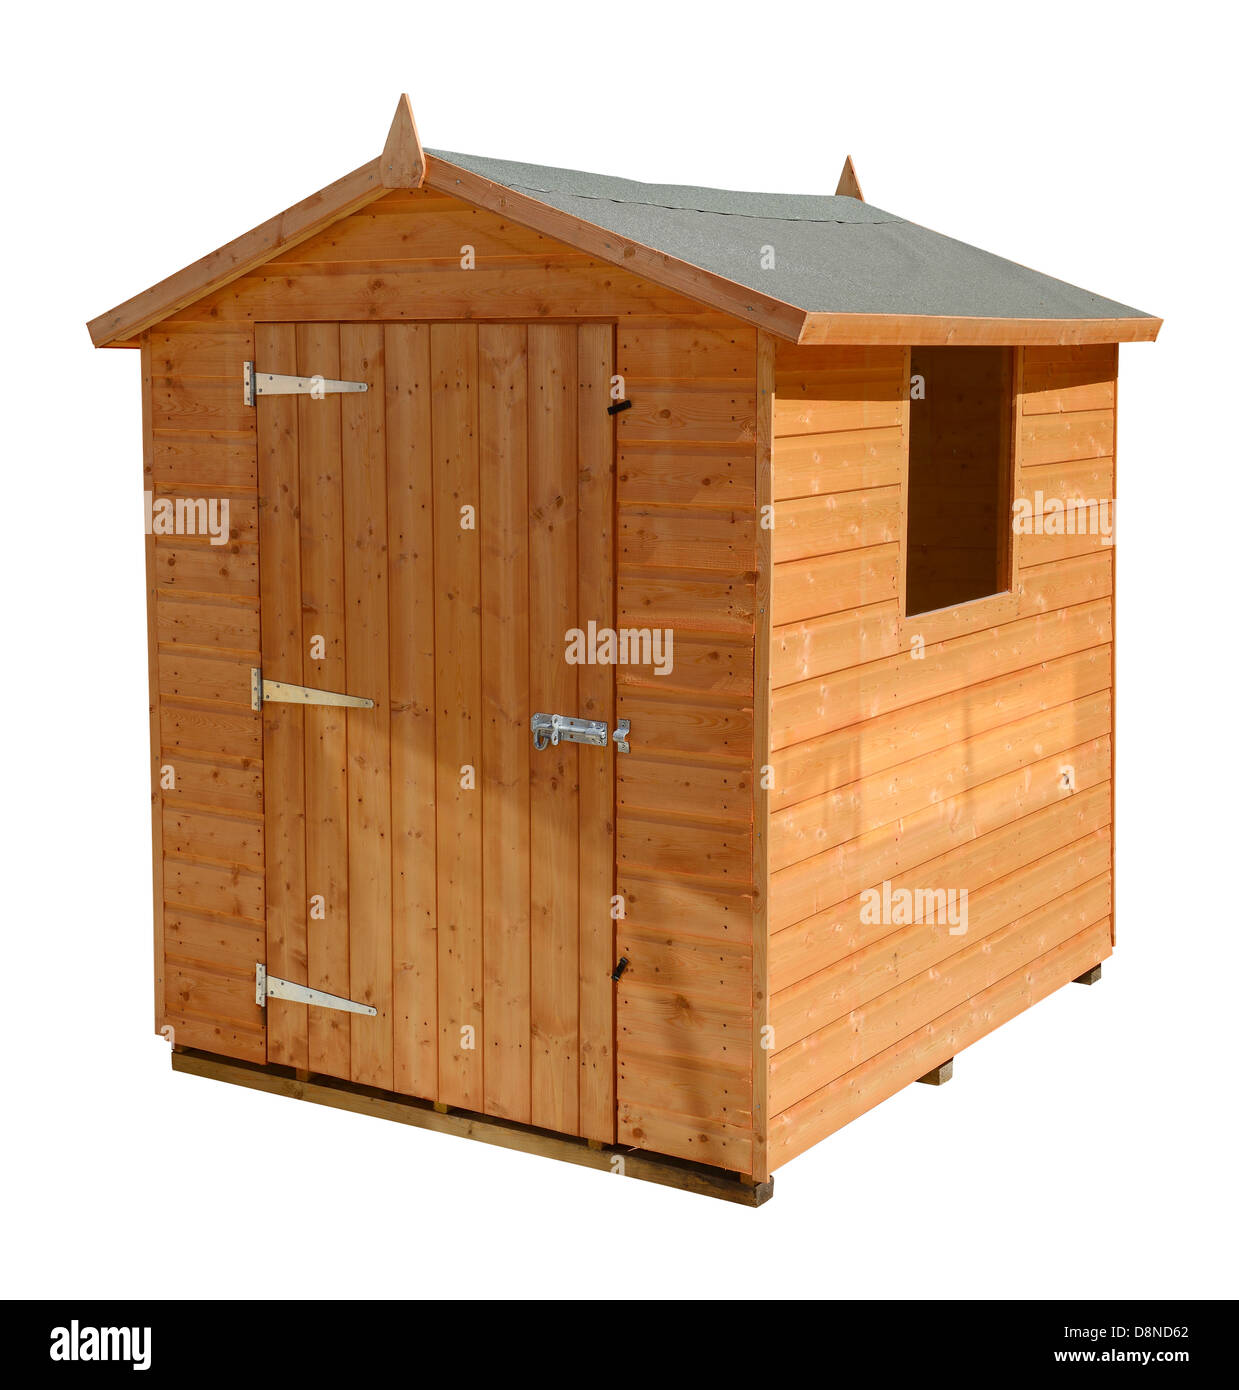 Wooden garden shed - Stock Image